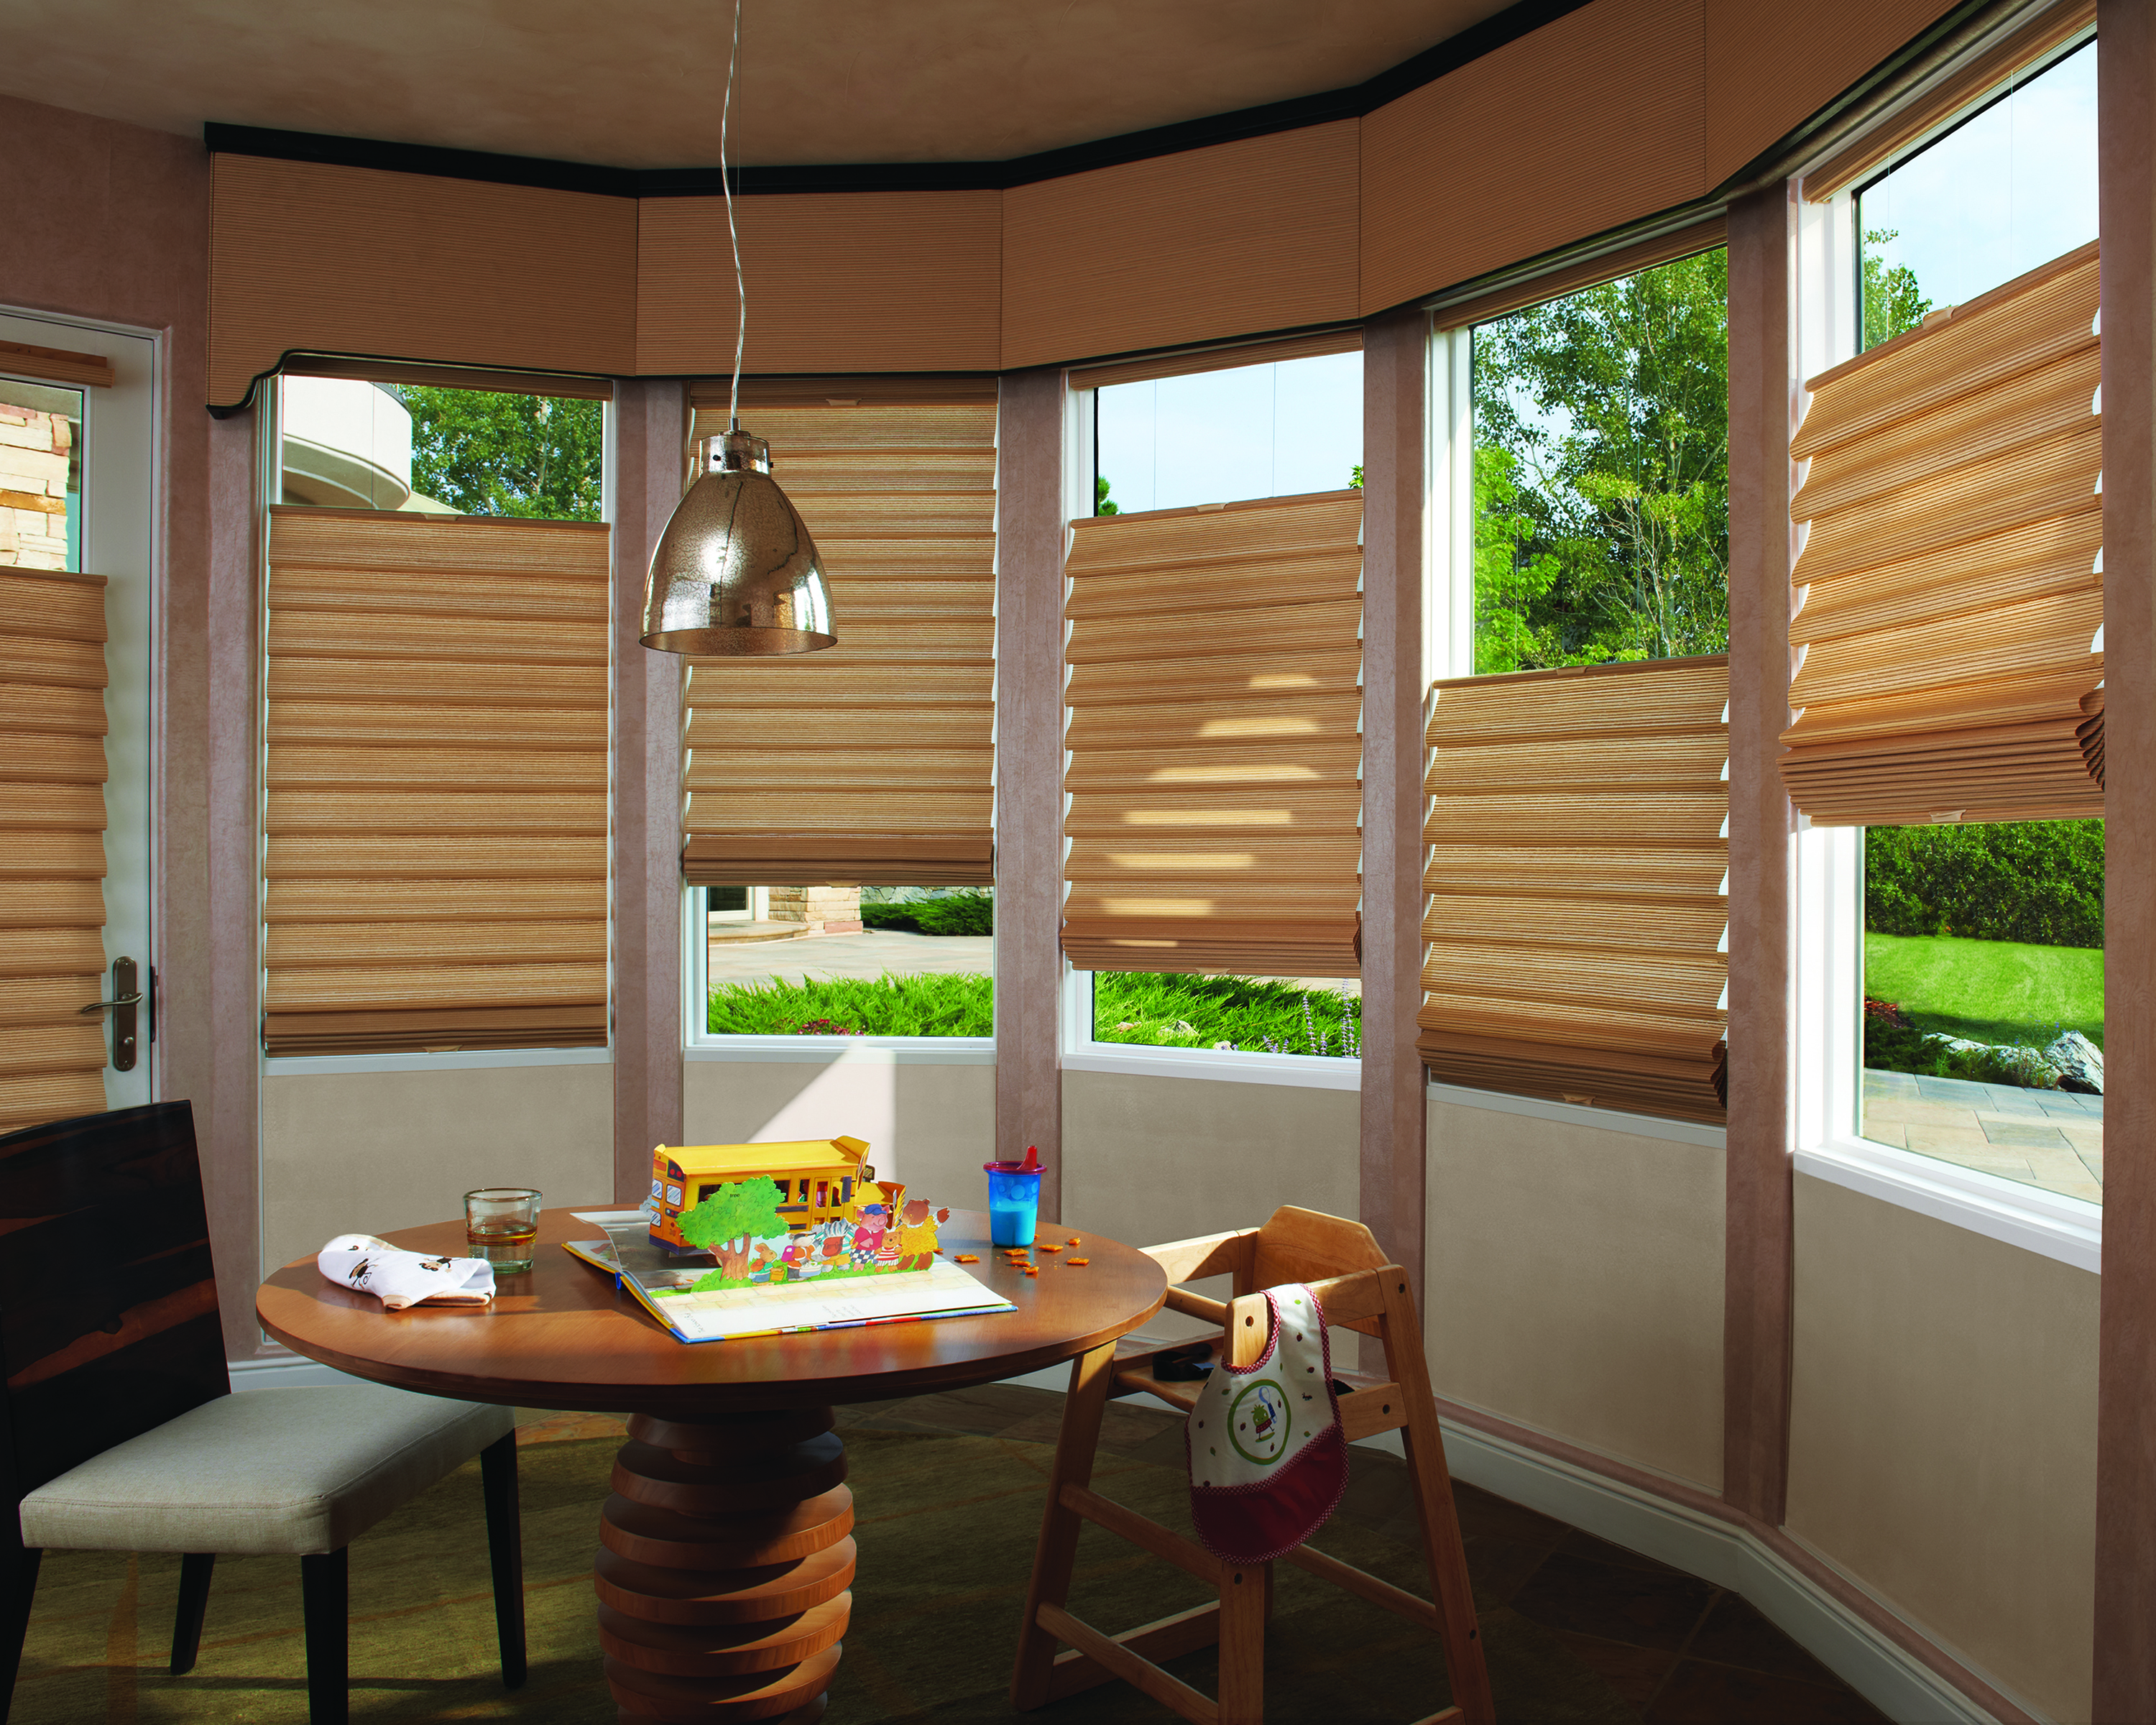 blog shades wood pirouette blinds img plum designs woven category and